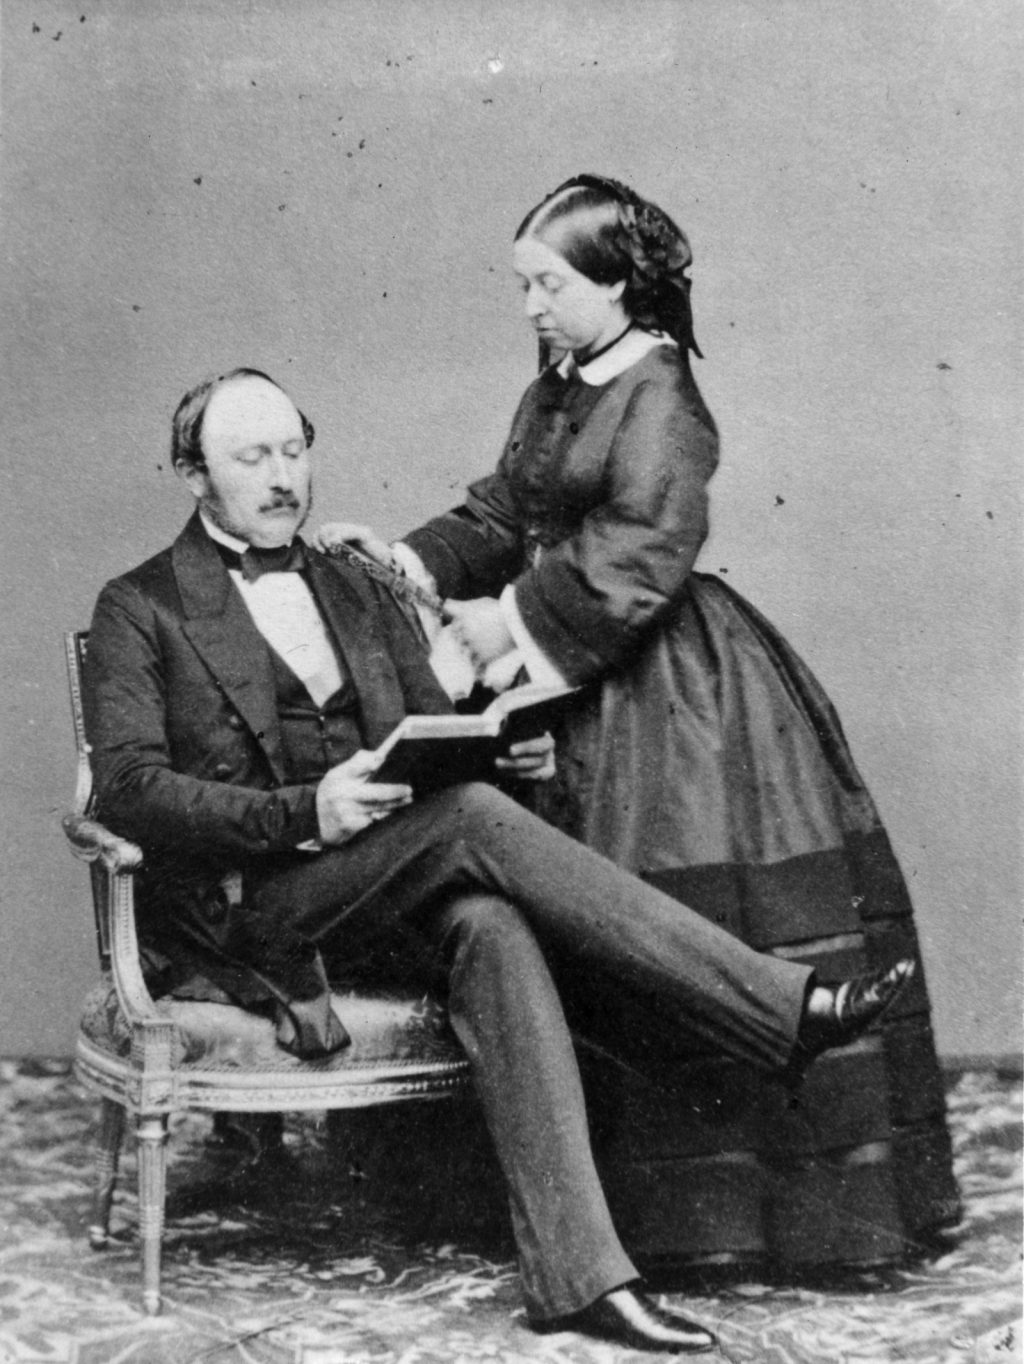 Queen Victoria described as 'selfish' and 'nagging wife' in Prince Albert's letters